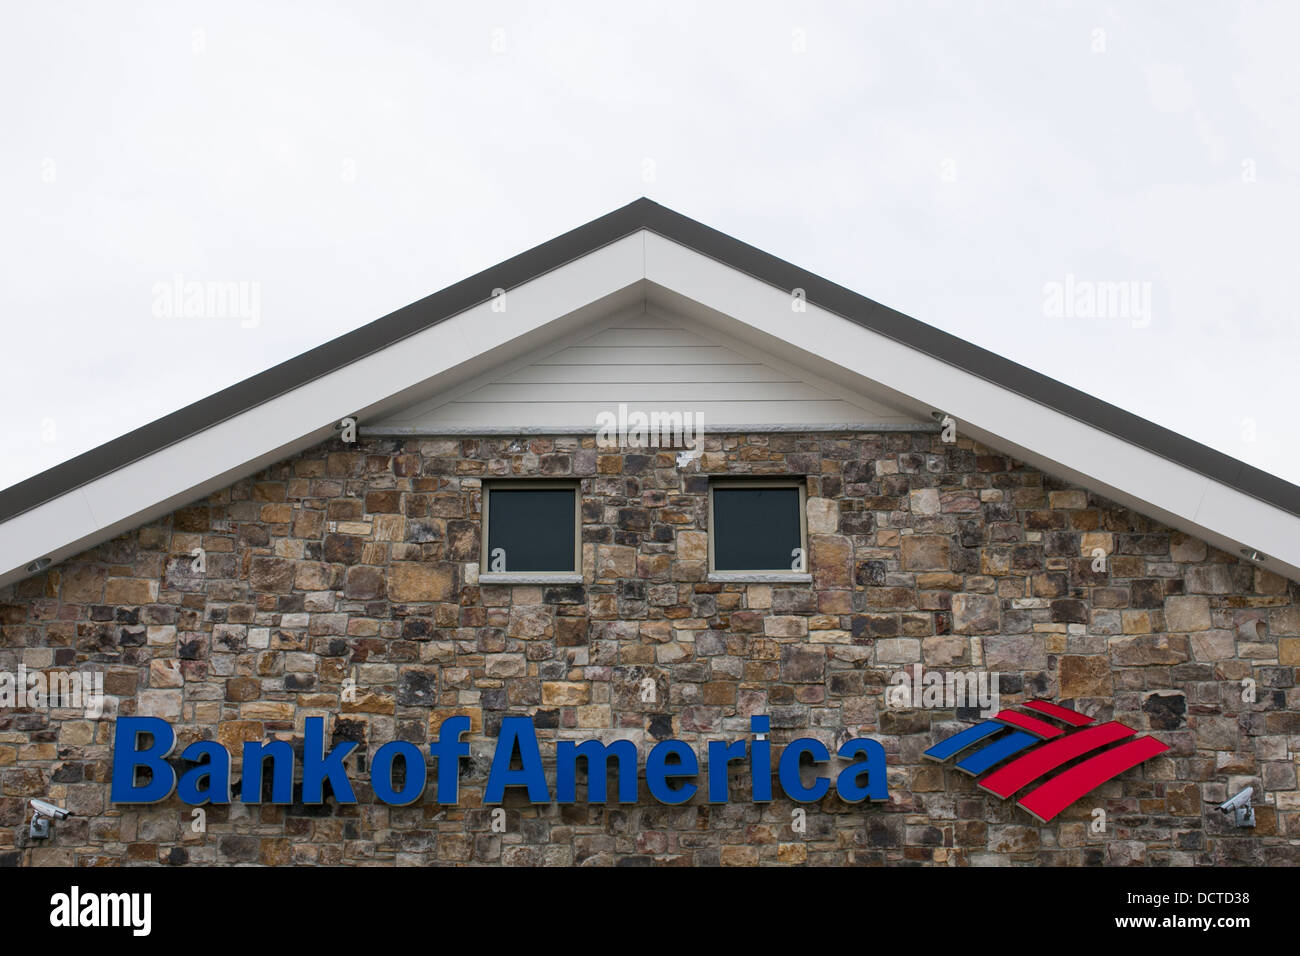 A Bank Of America branch.  - Stock Image